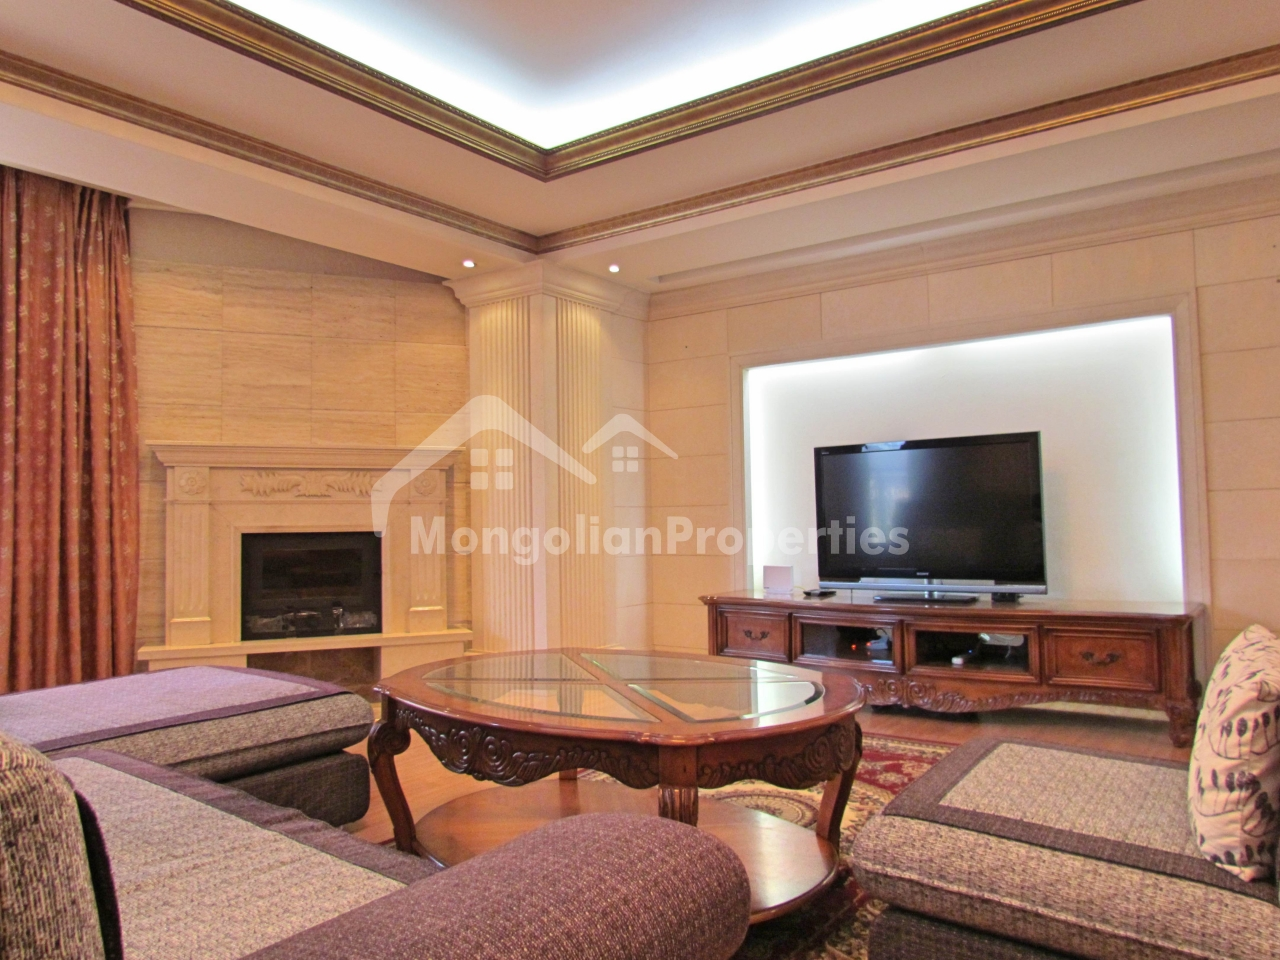 FOR RENT: SPACIOUS 3 BEDROOM APARTMENT IS FOR RENT AT THE SEOUL ROYAL COUNTY